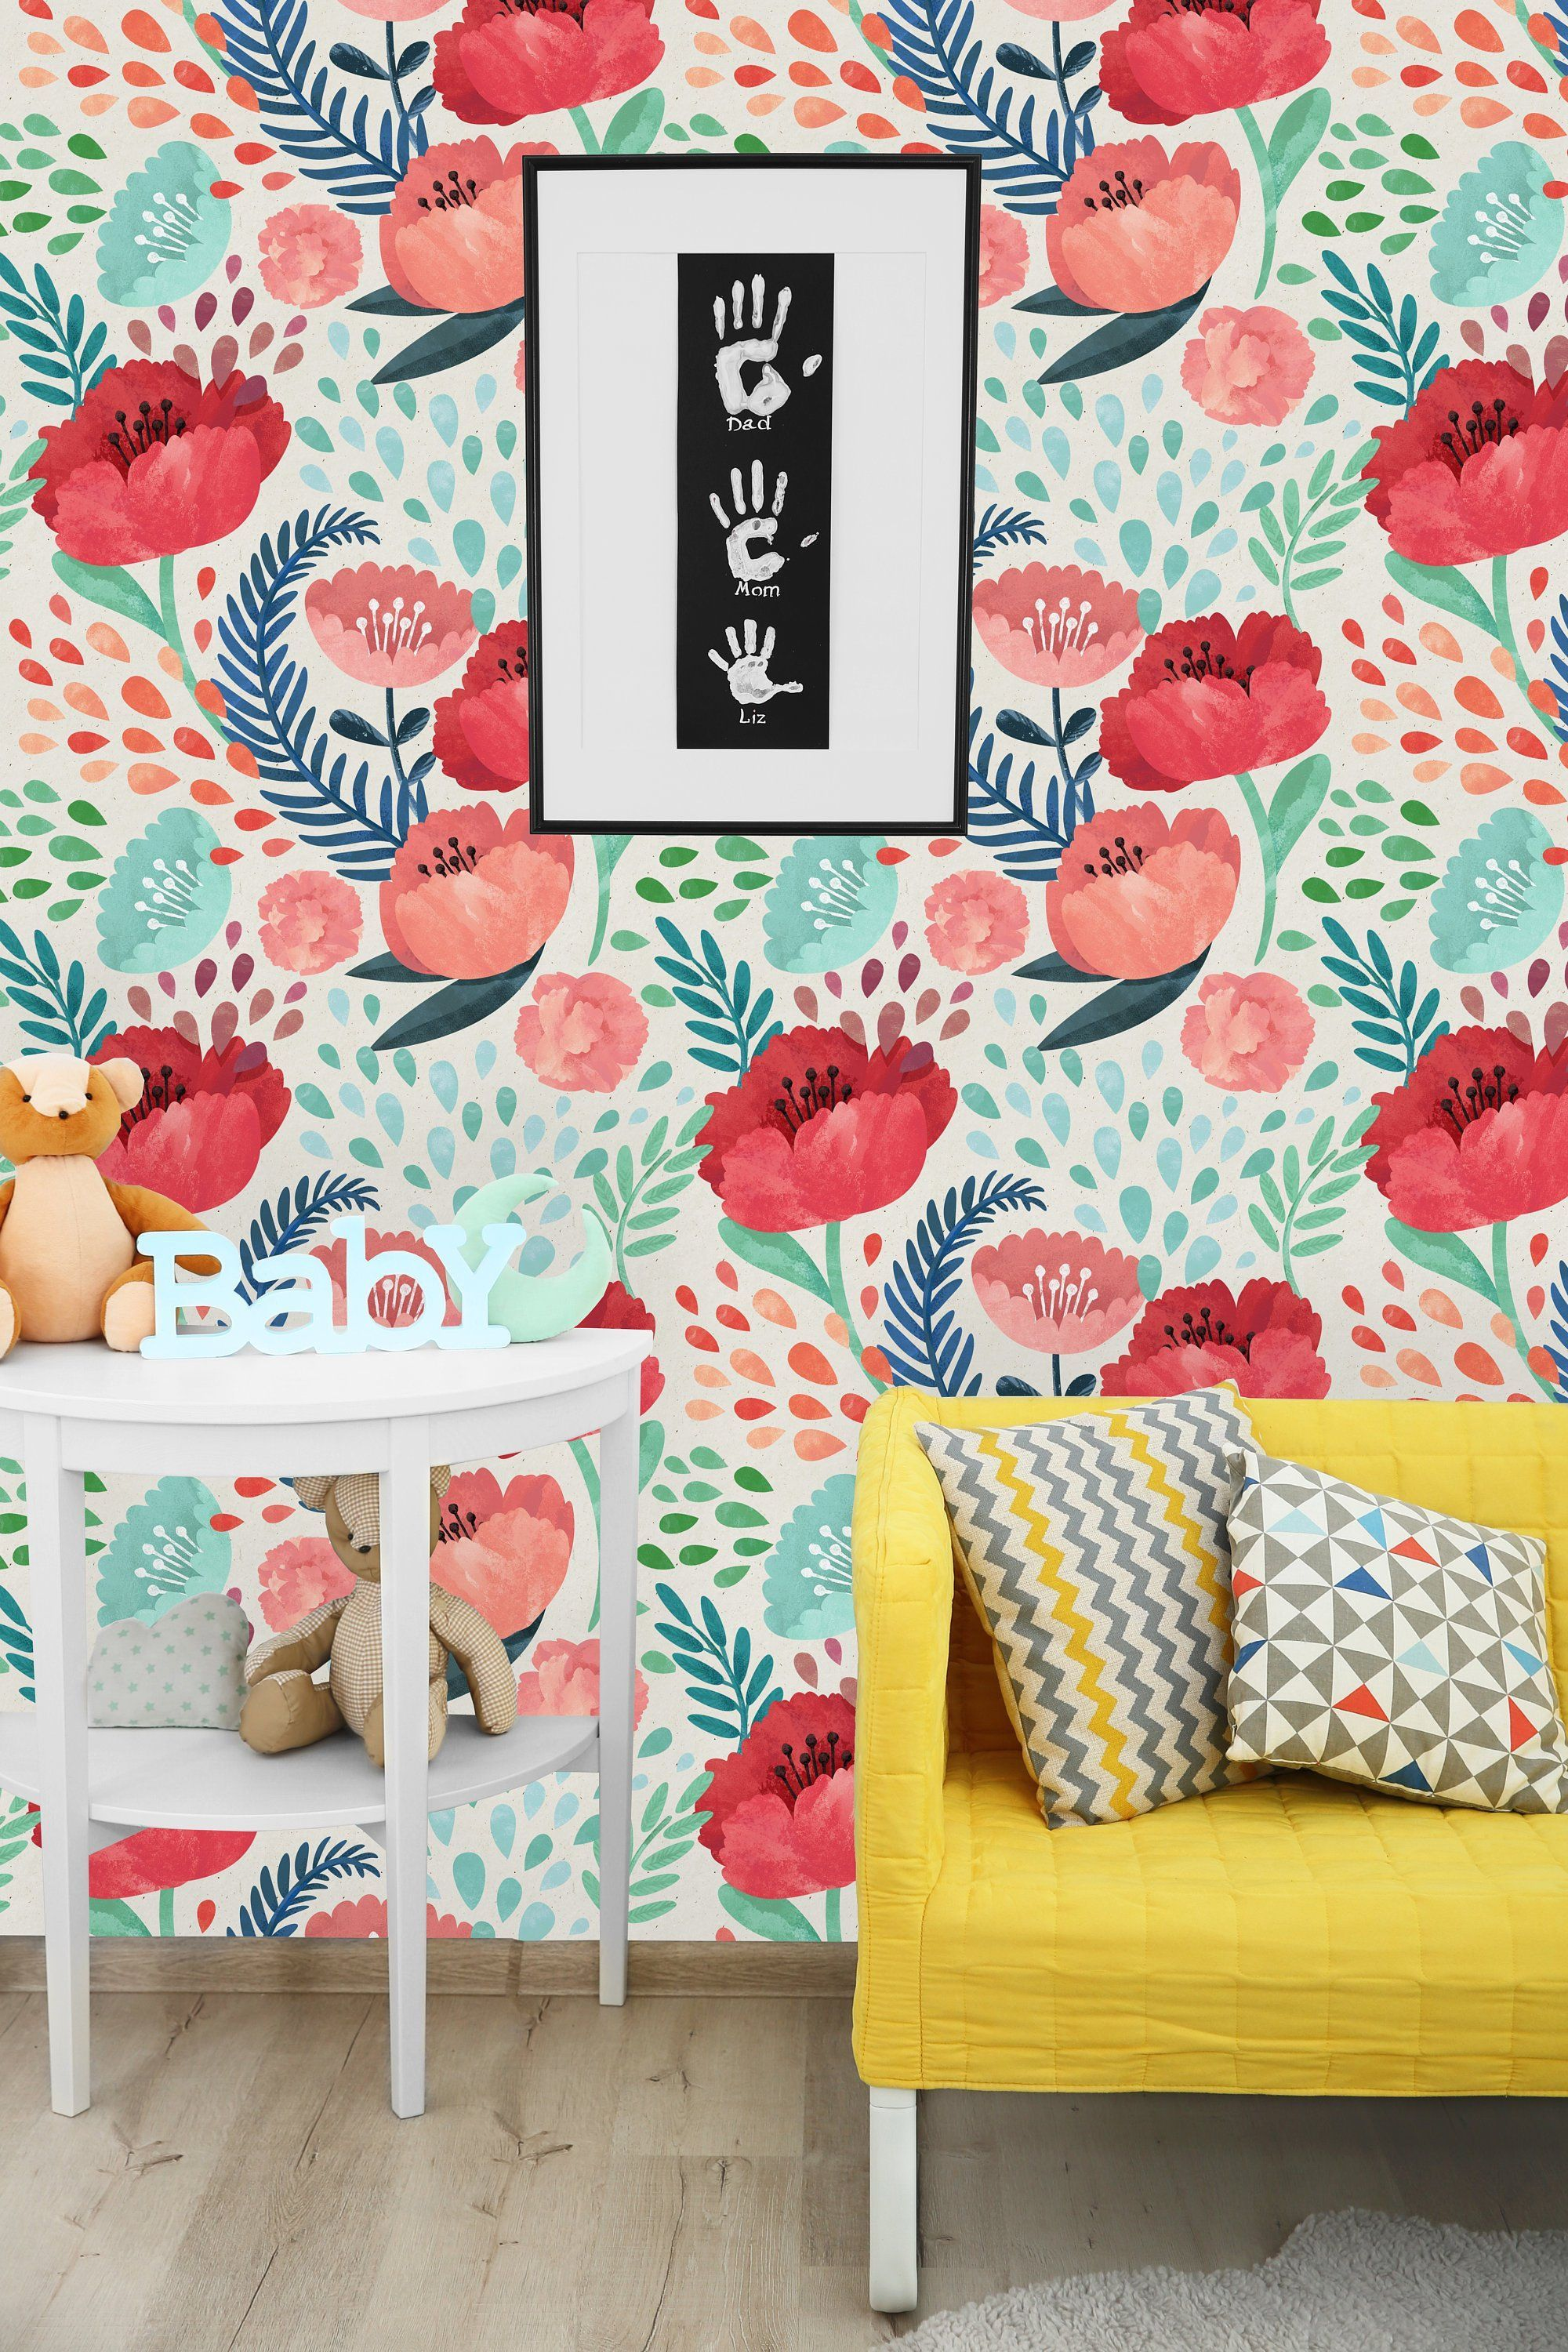 Red Poppy Flowers Removable Wallpaper Peel And Stick Wallpaper Wall Mural Self Adhesive Wallpaper Papier Peint Amovible Mural Idee Deco